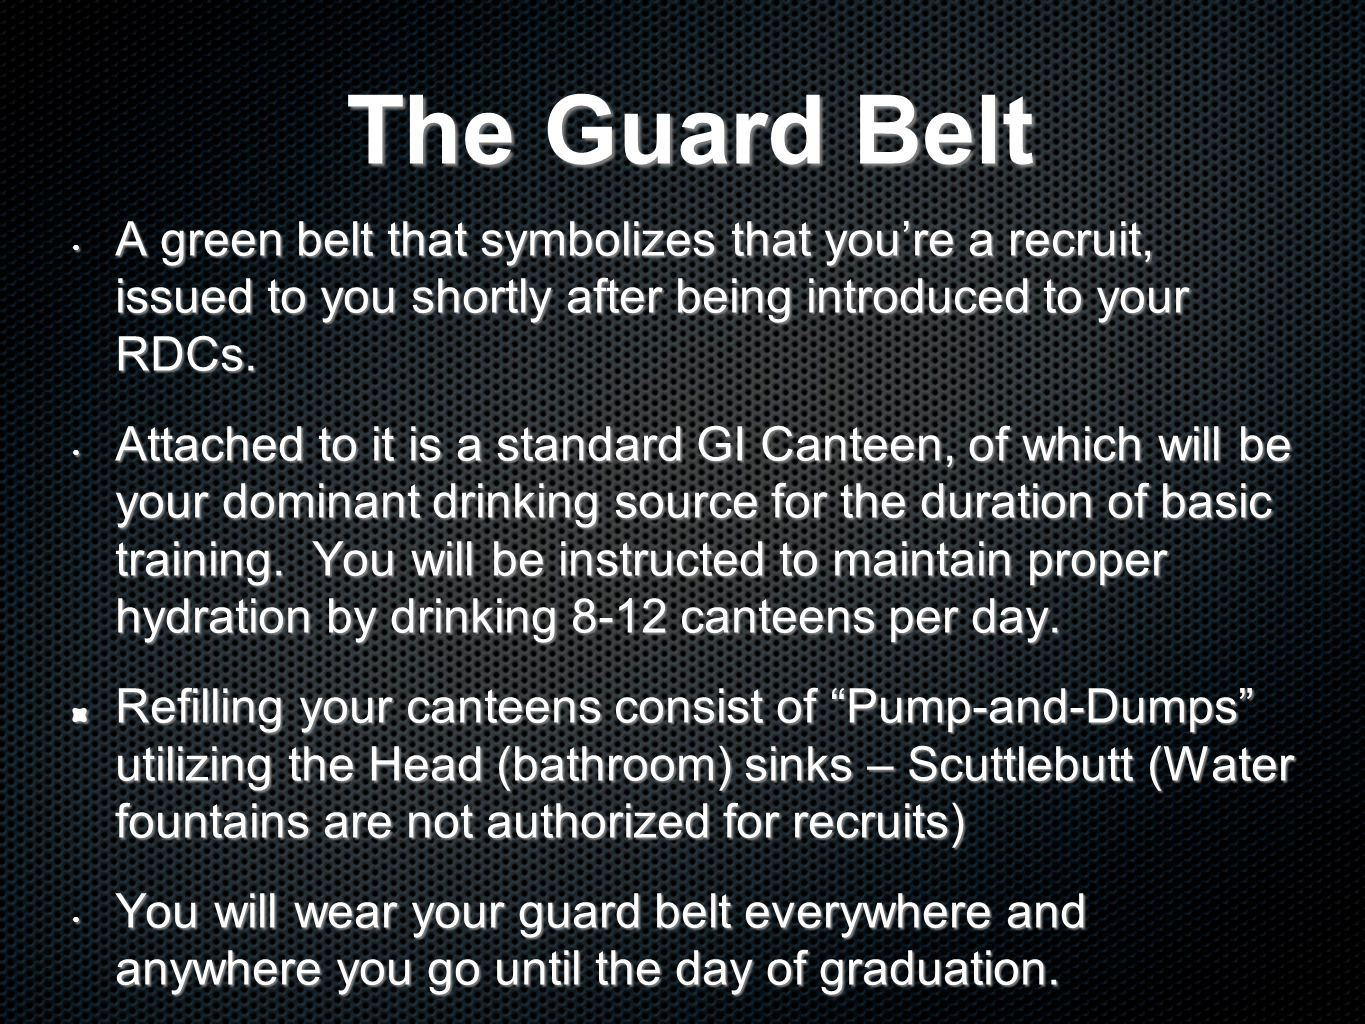 The Guard Belt A green belt that symbolizes that you're a recruit, issued to you shortly after being introduced to your RDCs.